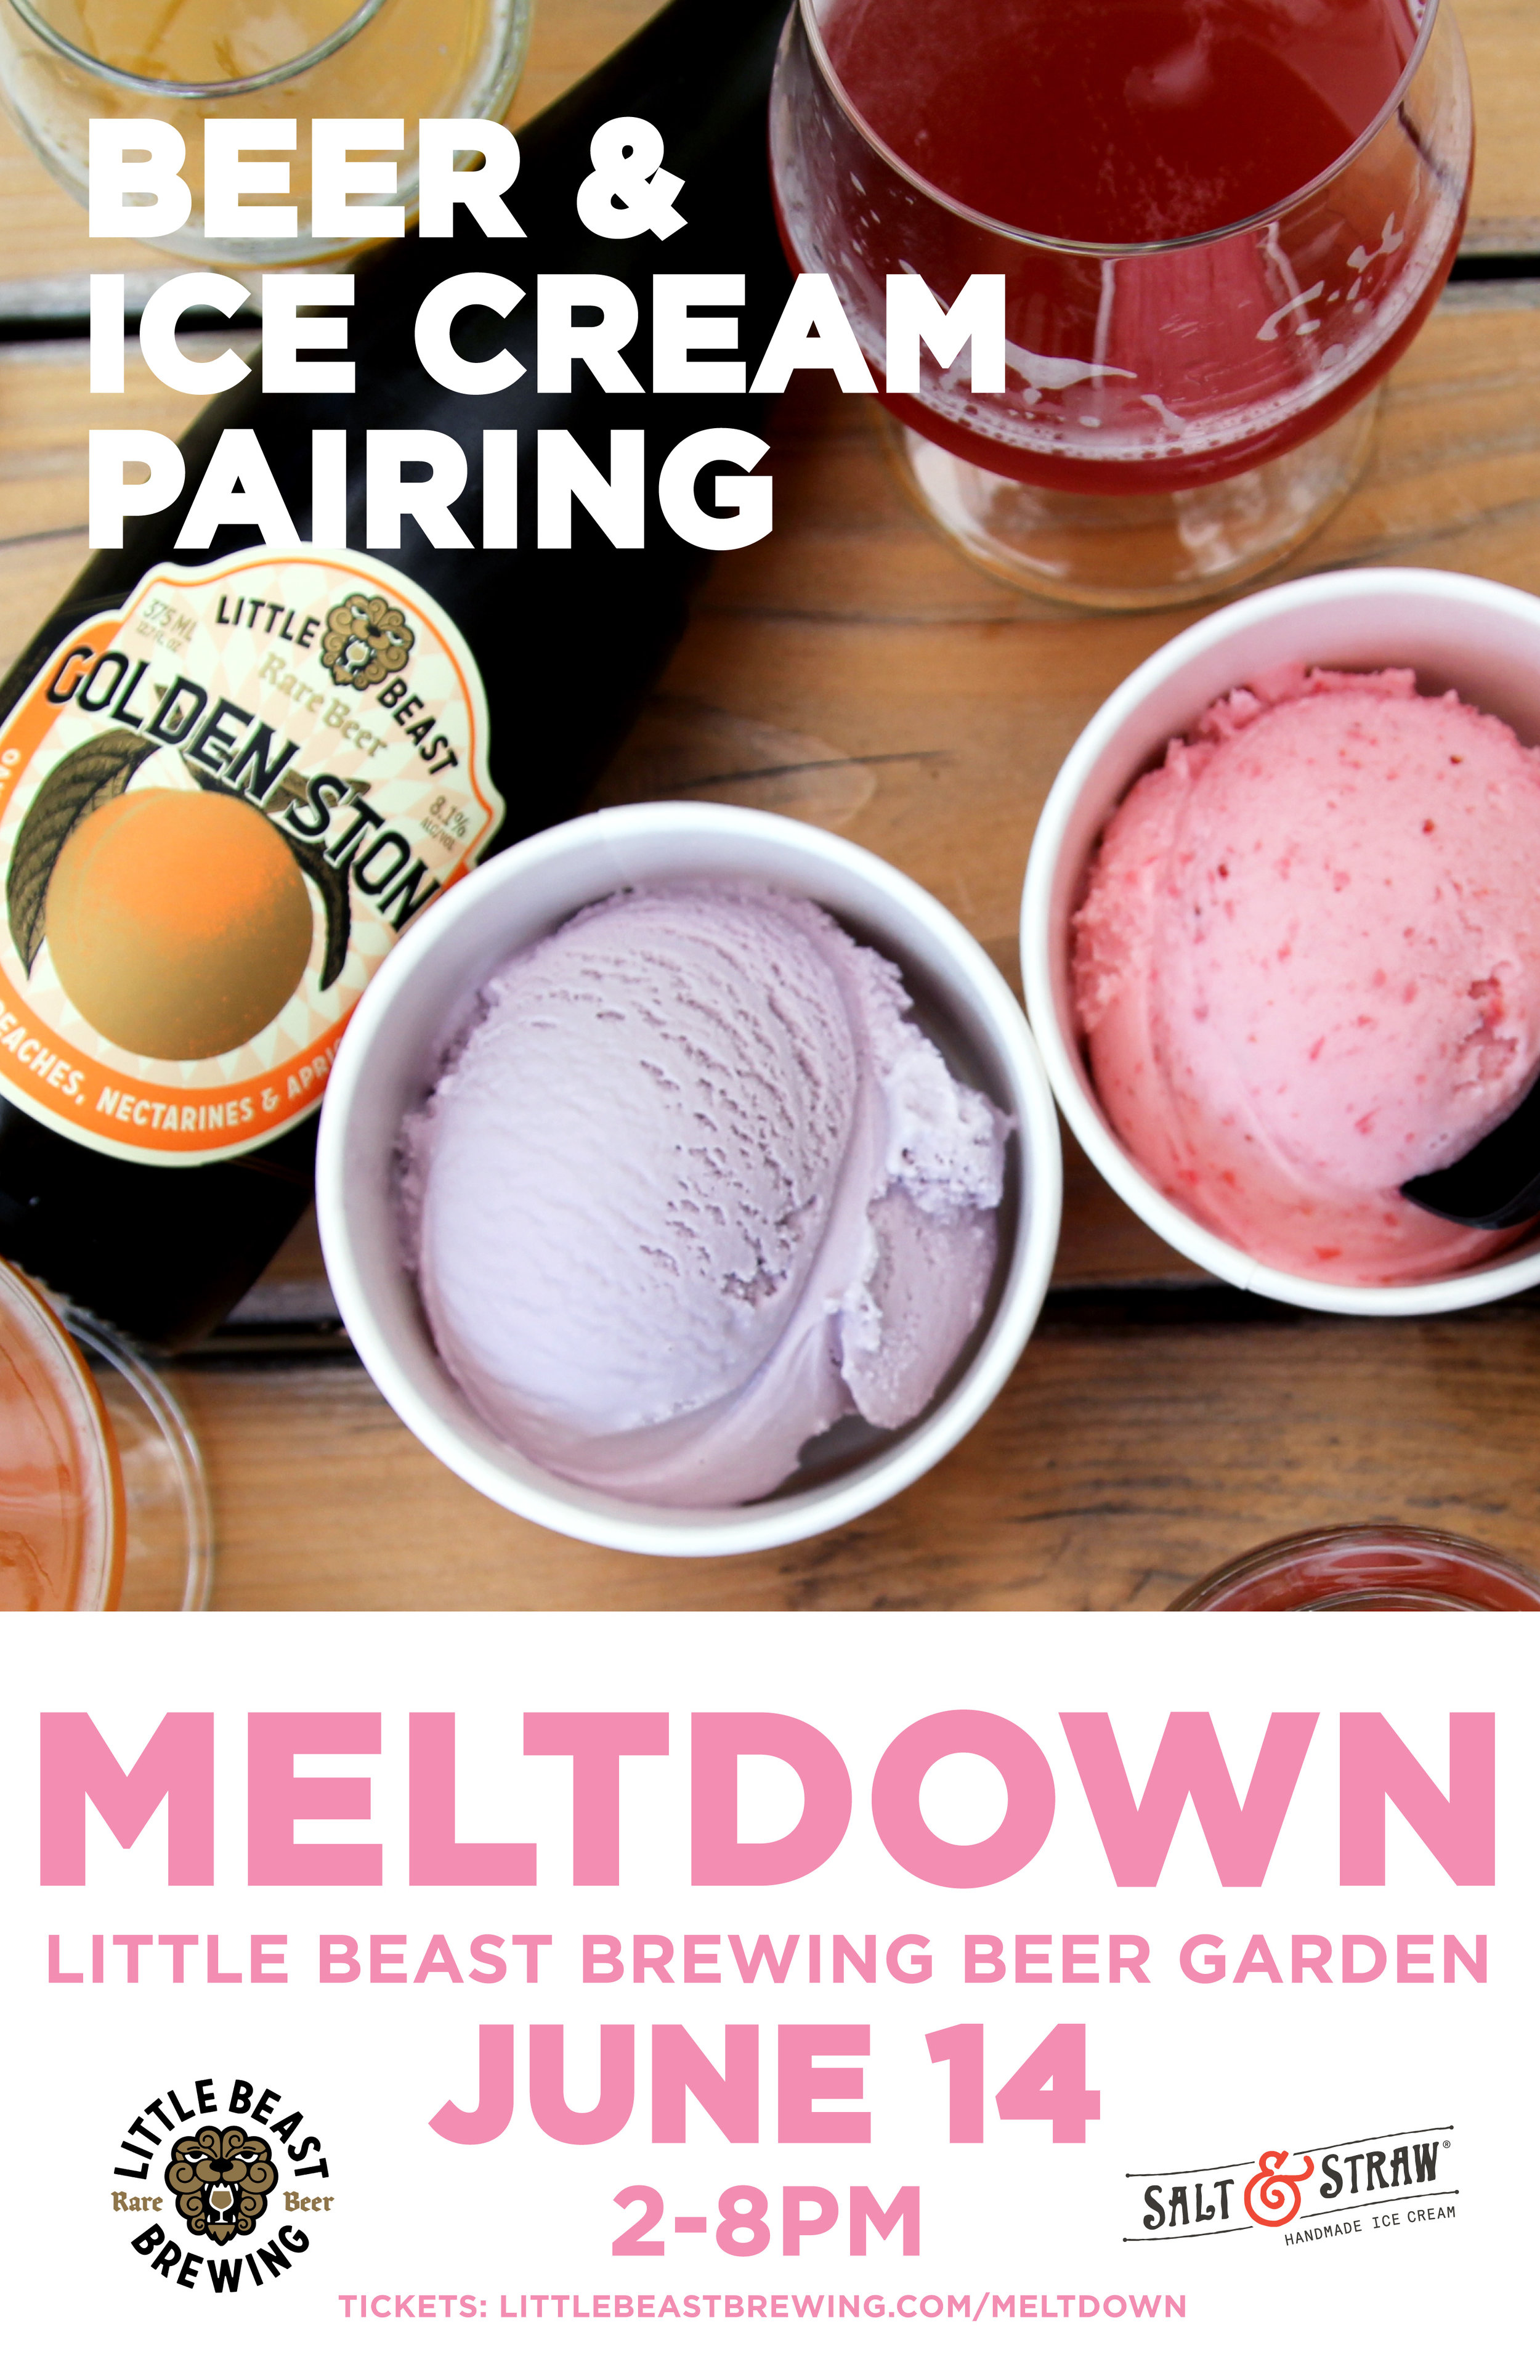 Meltdown: Salt & Straw Meets Little Beast Brewing - Fri. June 14th, 2-8pmLittle Beast Beer Garden, 3412 SE Division St.Buy Tickets HereWe're Pouring: See BelowWhat happens when you pair the tart, mixed culture fruit beers of Little Beast Brewing with the taste-provoking, small-batch ice creams of Salt & Straw? You get the warm fuzzies and the brain freeze at the same time!On June 14th, from 12:00pm-8:00pm, join Little Beast to celebrate the first anniversary of their year round patio on SE Division St. The Little Beast brew team and the Research and Development team at Salt & Straw came up with three extra special beer and ice cream pairings for the occasion:Roasted Strawberry Coconut Vegan Ice Cream paired with Dream State (Foeder Aged Ale with Strawberries)Sea Salt w/ Caramel Ribbons Ice Cream paired with Golden Stone (Oak Aged Ale with Peaches, Nectarines, and Apricots)Double Fold Vanilla Ice Cream paired with Black Cap (Foeder Aged Ale with Black Cap Raspberries)